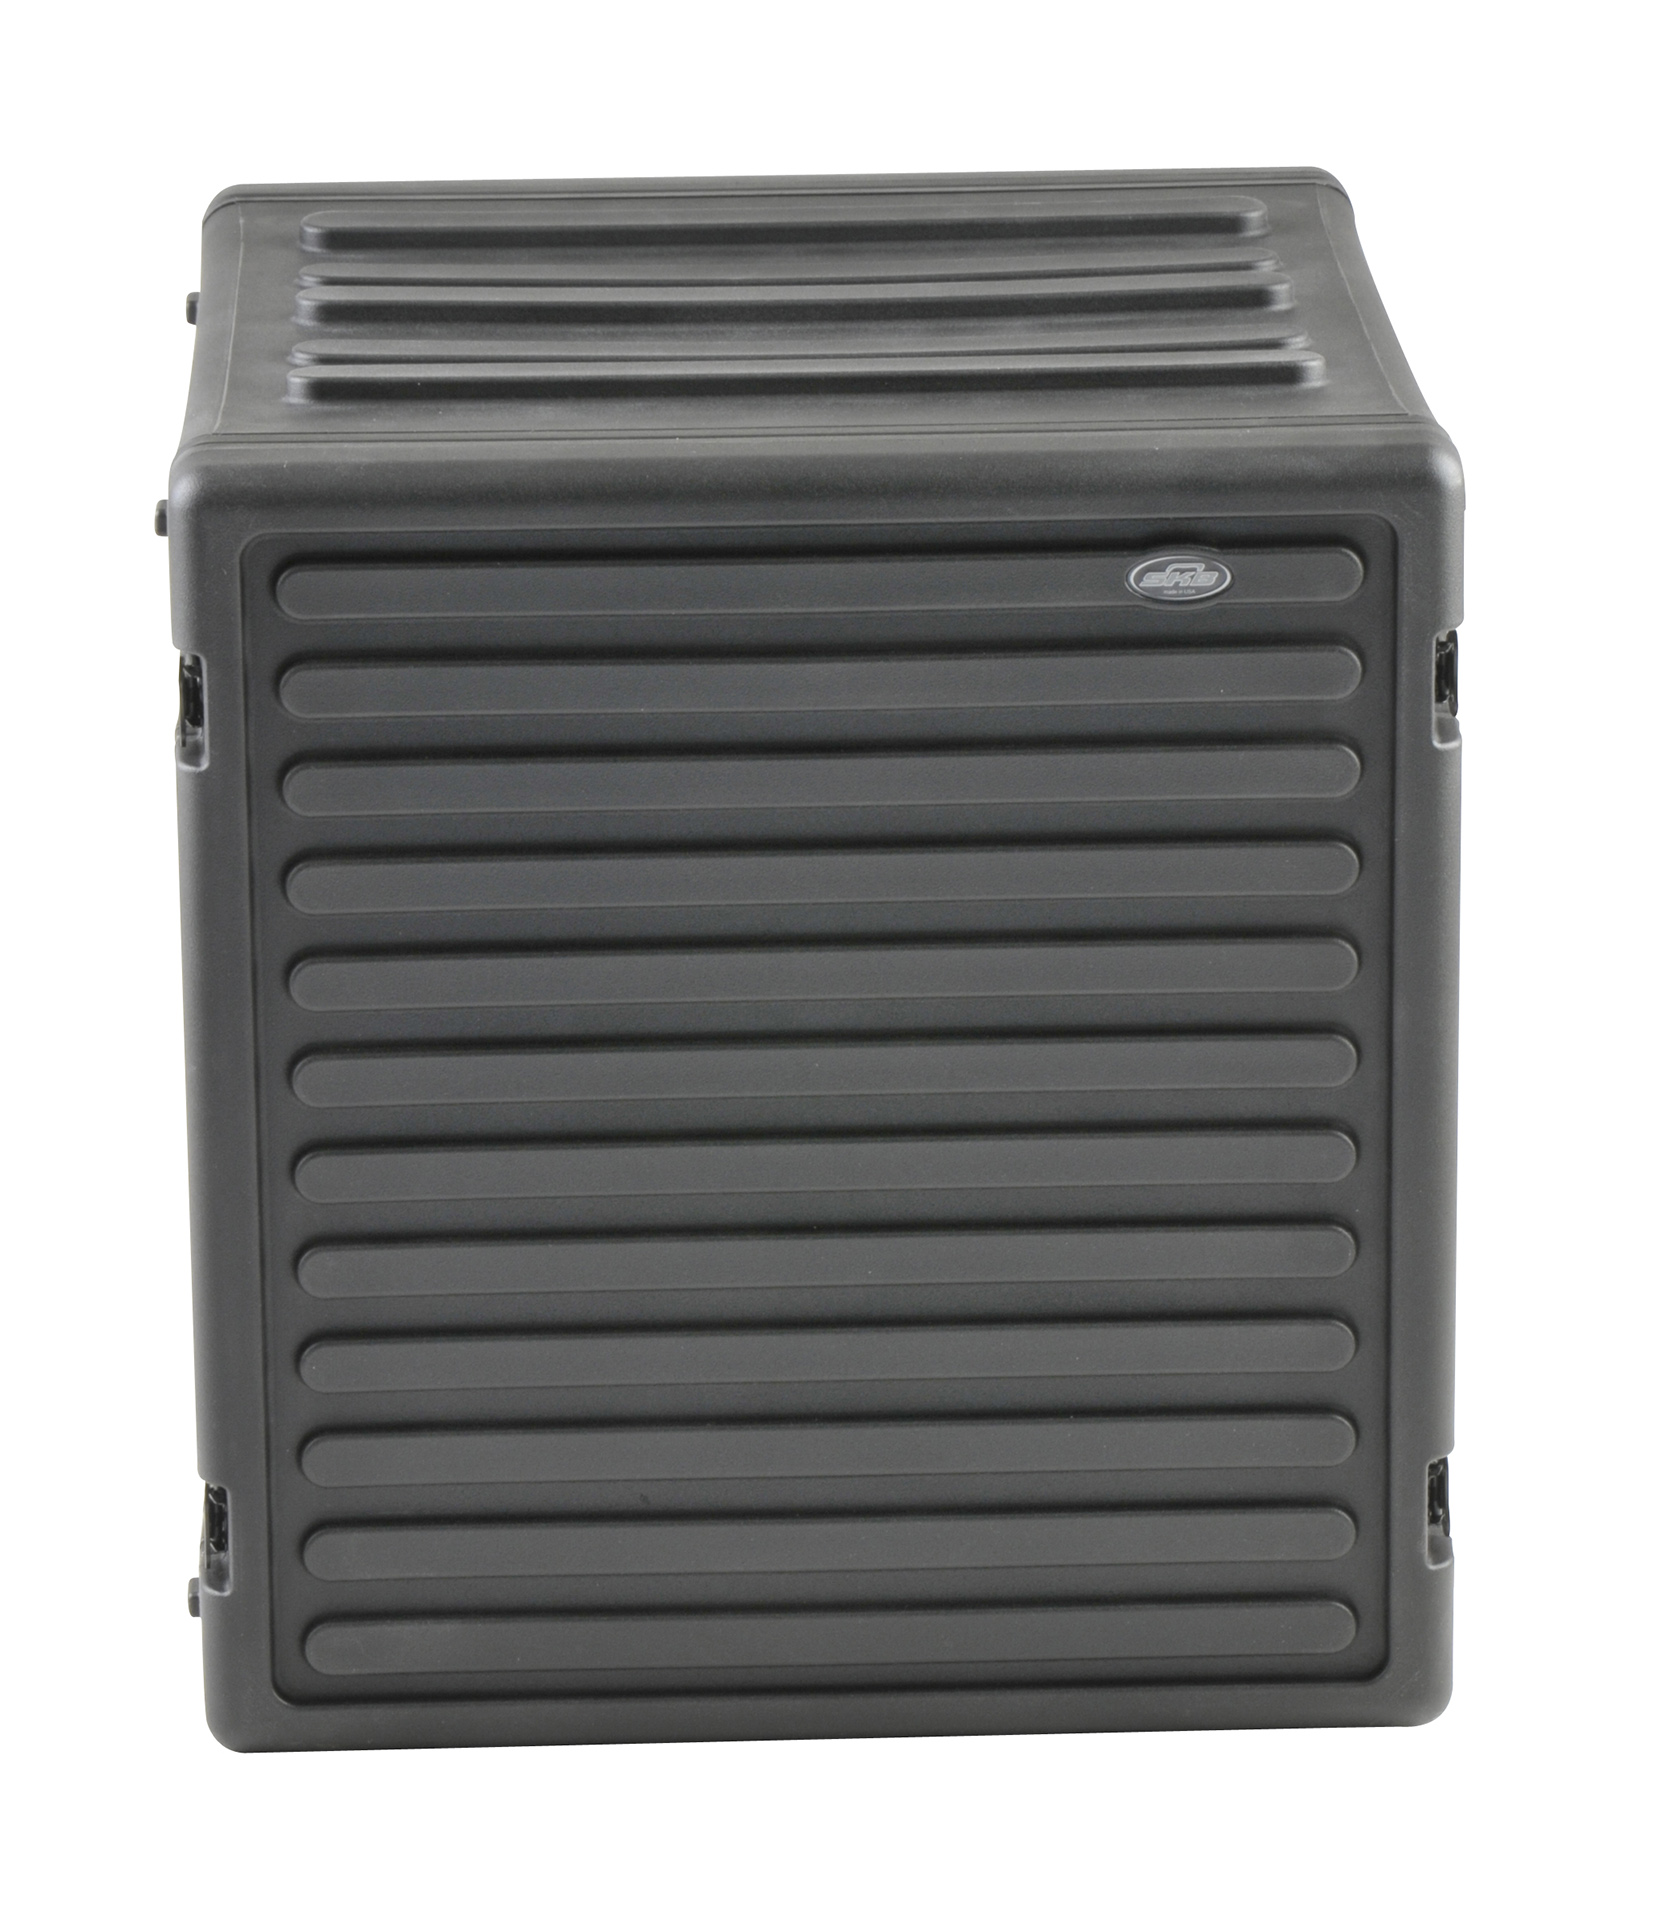 Buy SKB - 1SKB R12U 12U Space Roto Molded Rack